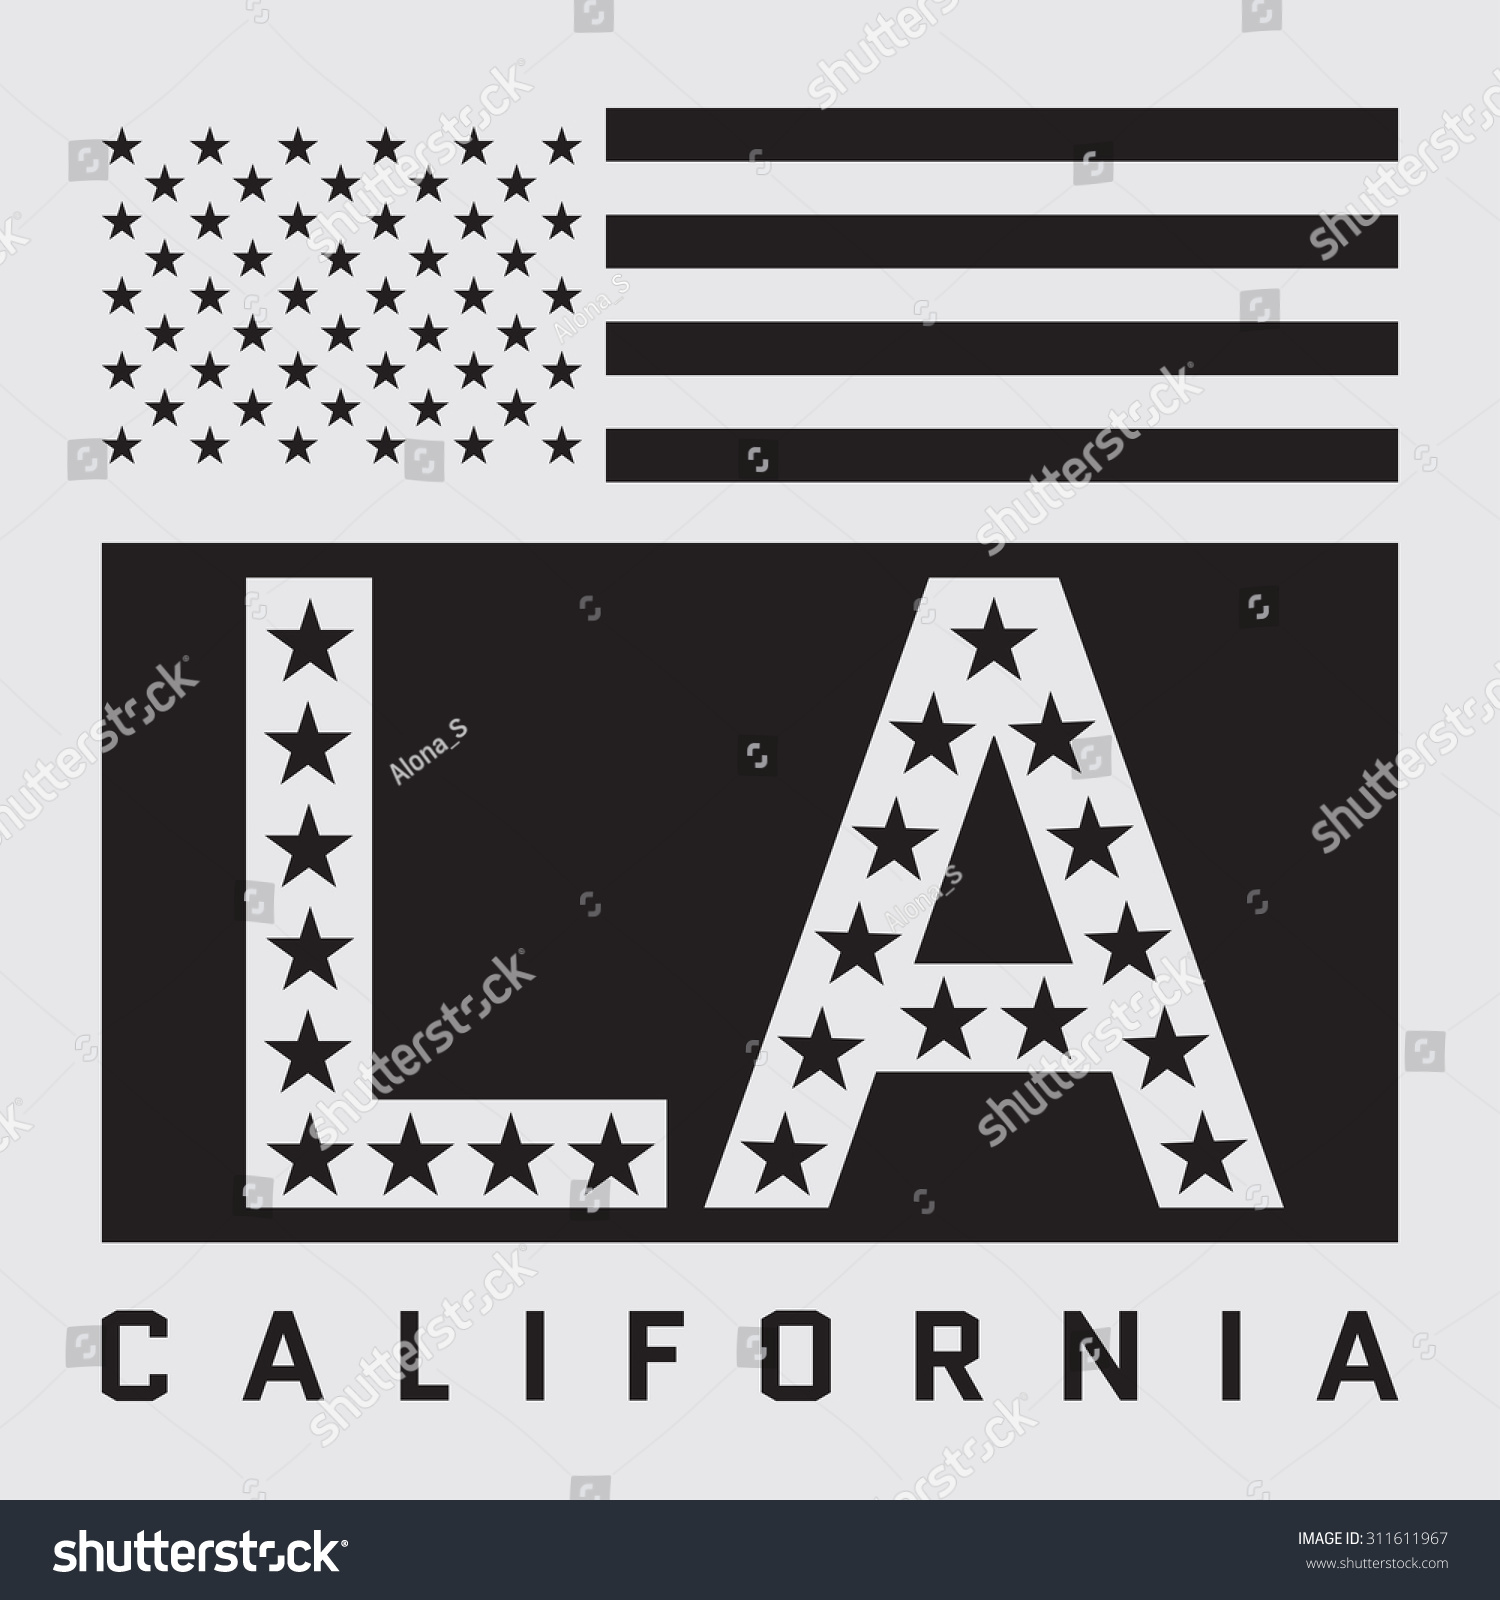 Los Angeles California Typography American Flag Stock Vector - Los angeles poster black and white